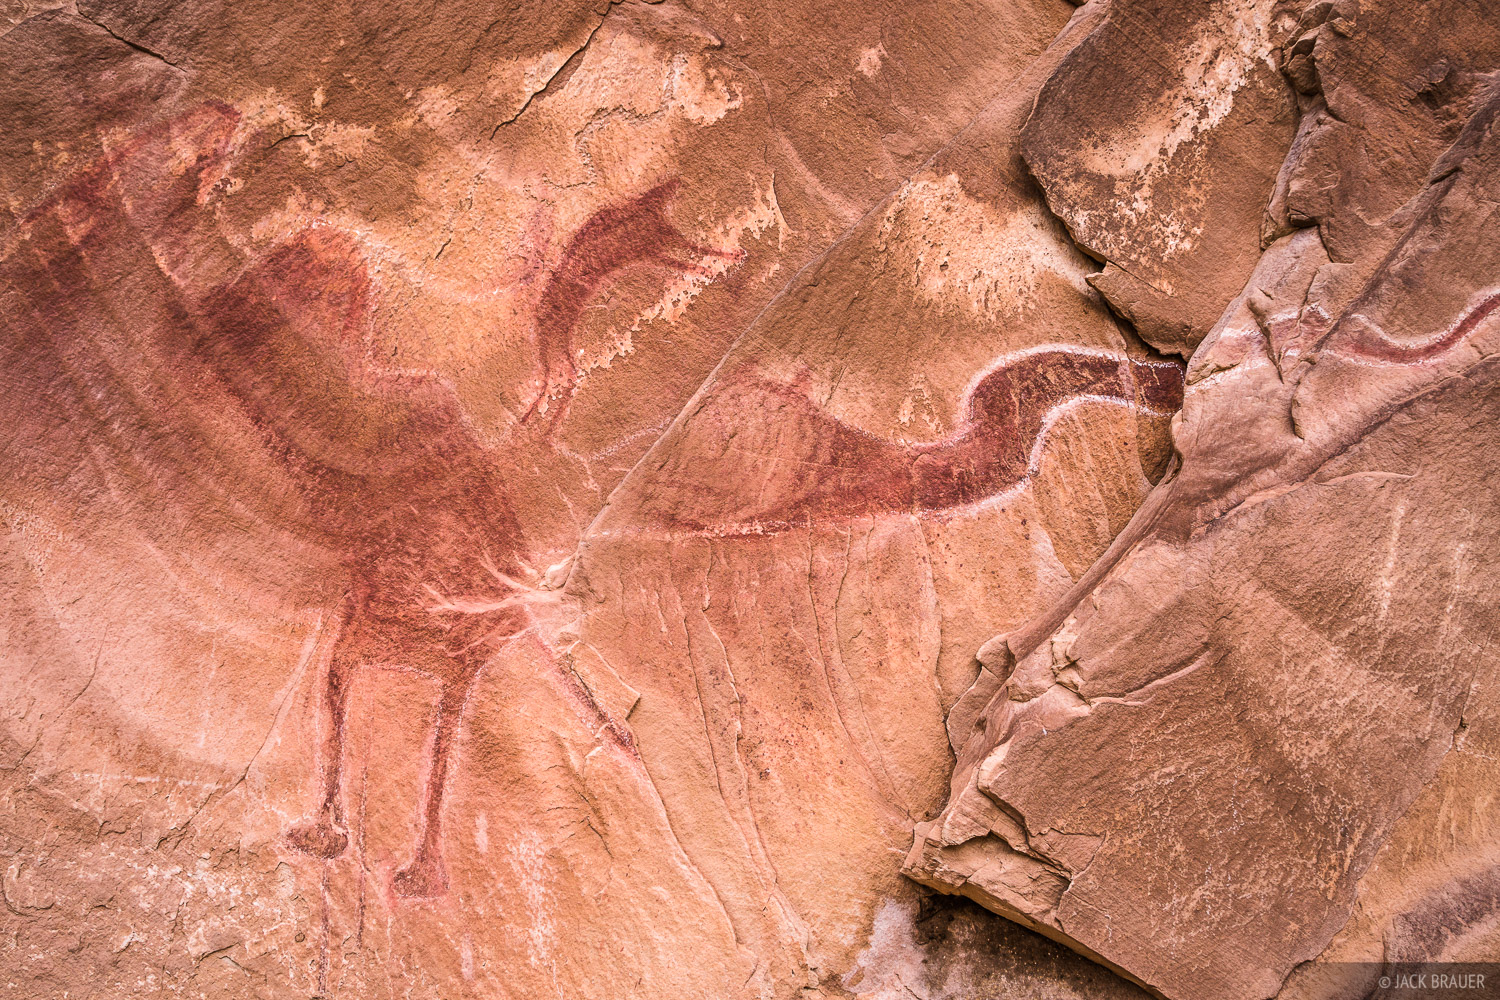 Black Dragon Wash, San Rafael Swell, Utah, pictographs, photo